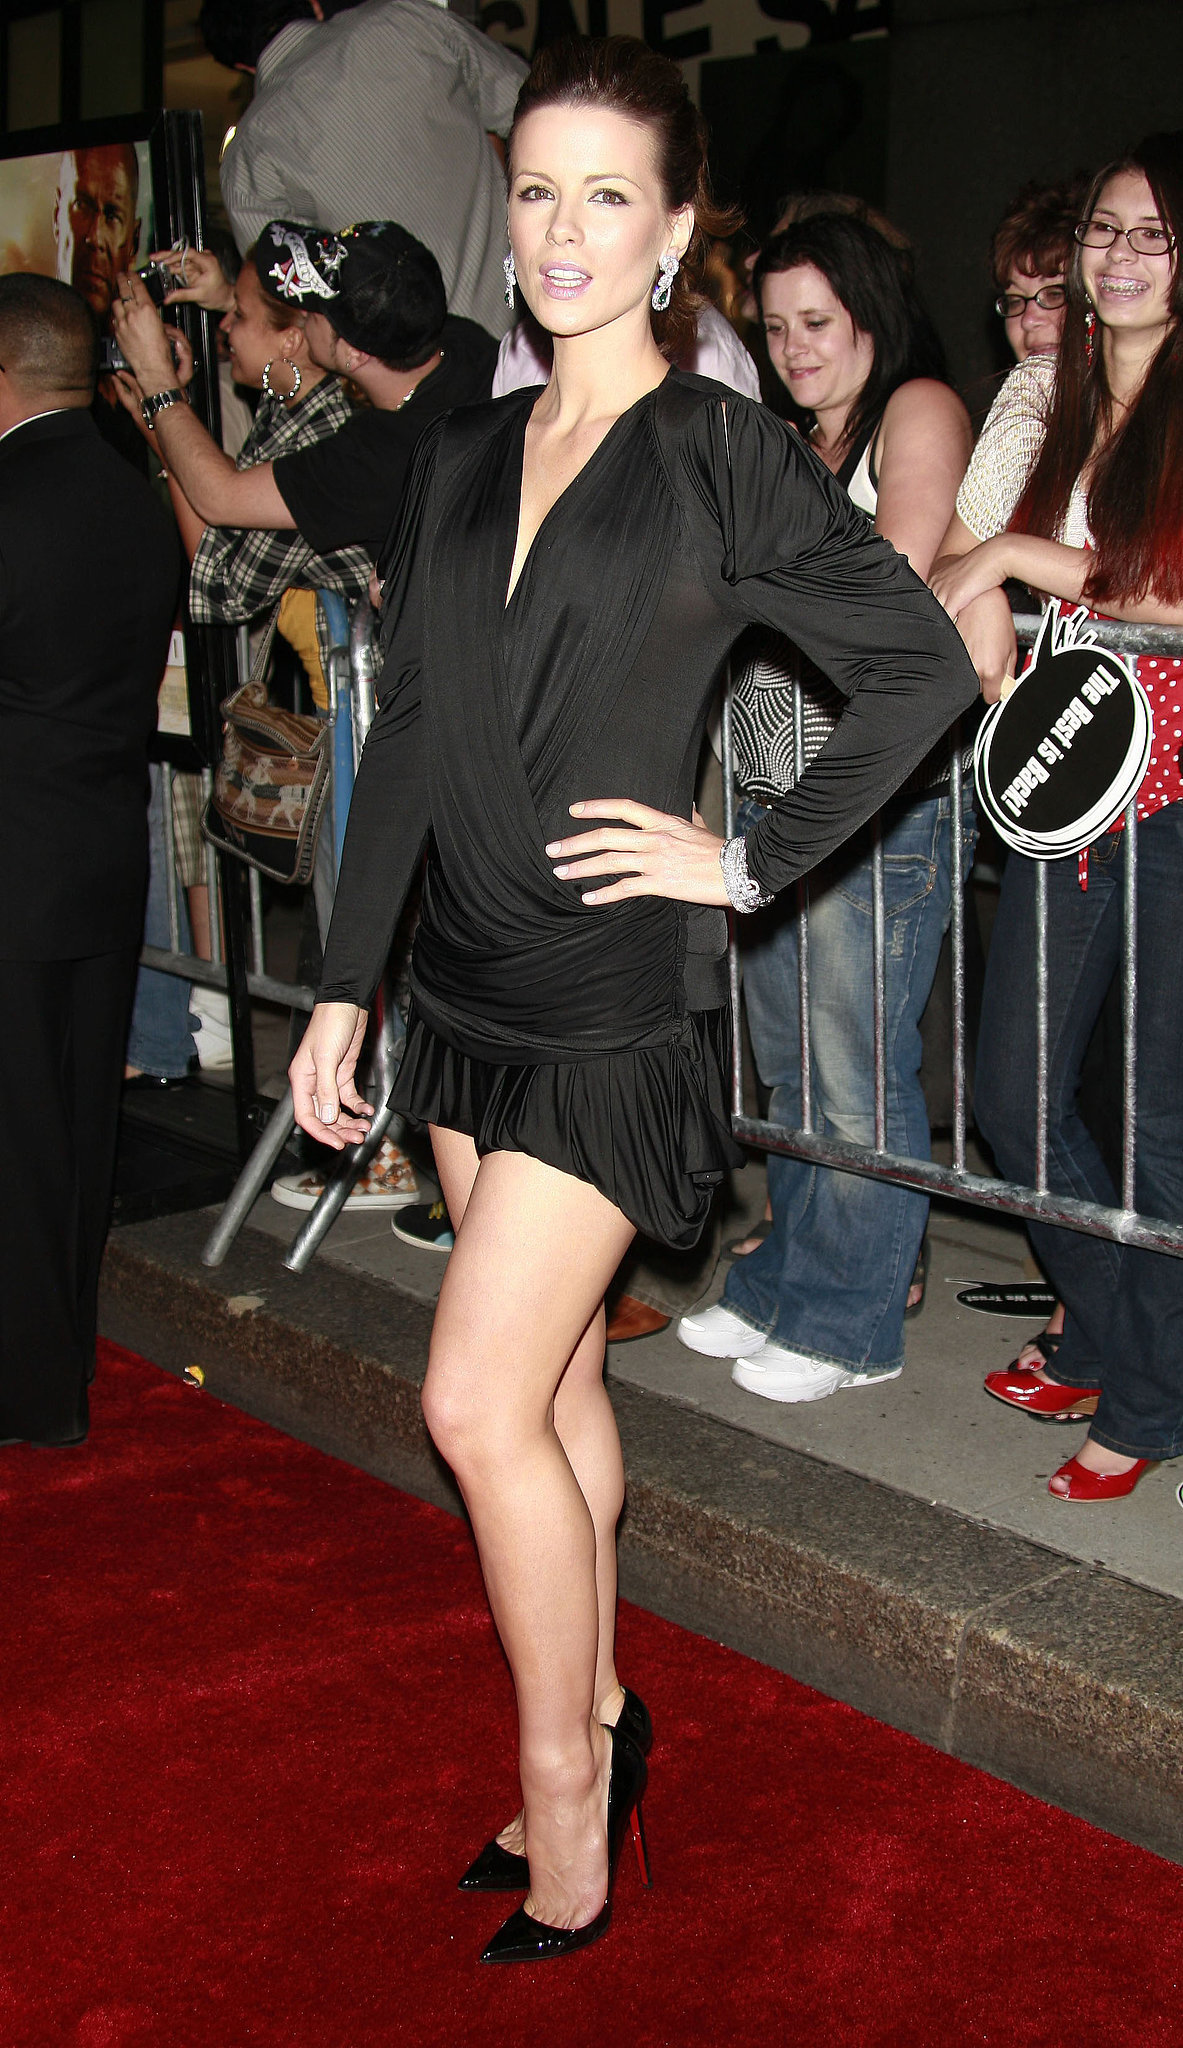 Kate Beckinsale flaunted her legs at the June 2007 NYC premiere of her husband Len Wiseman's film Live Free or Die Hard.